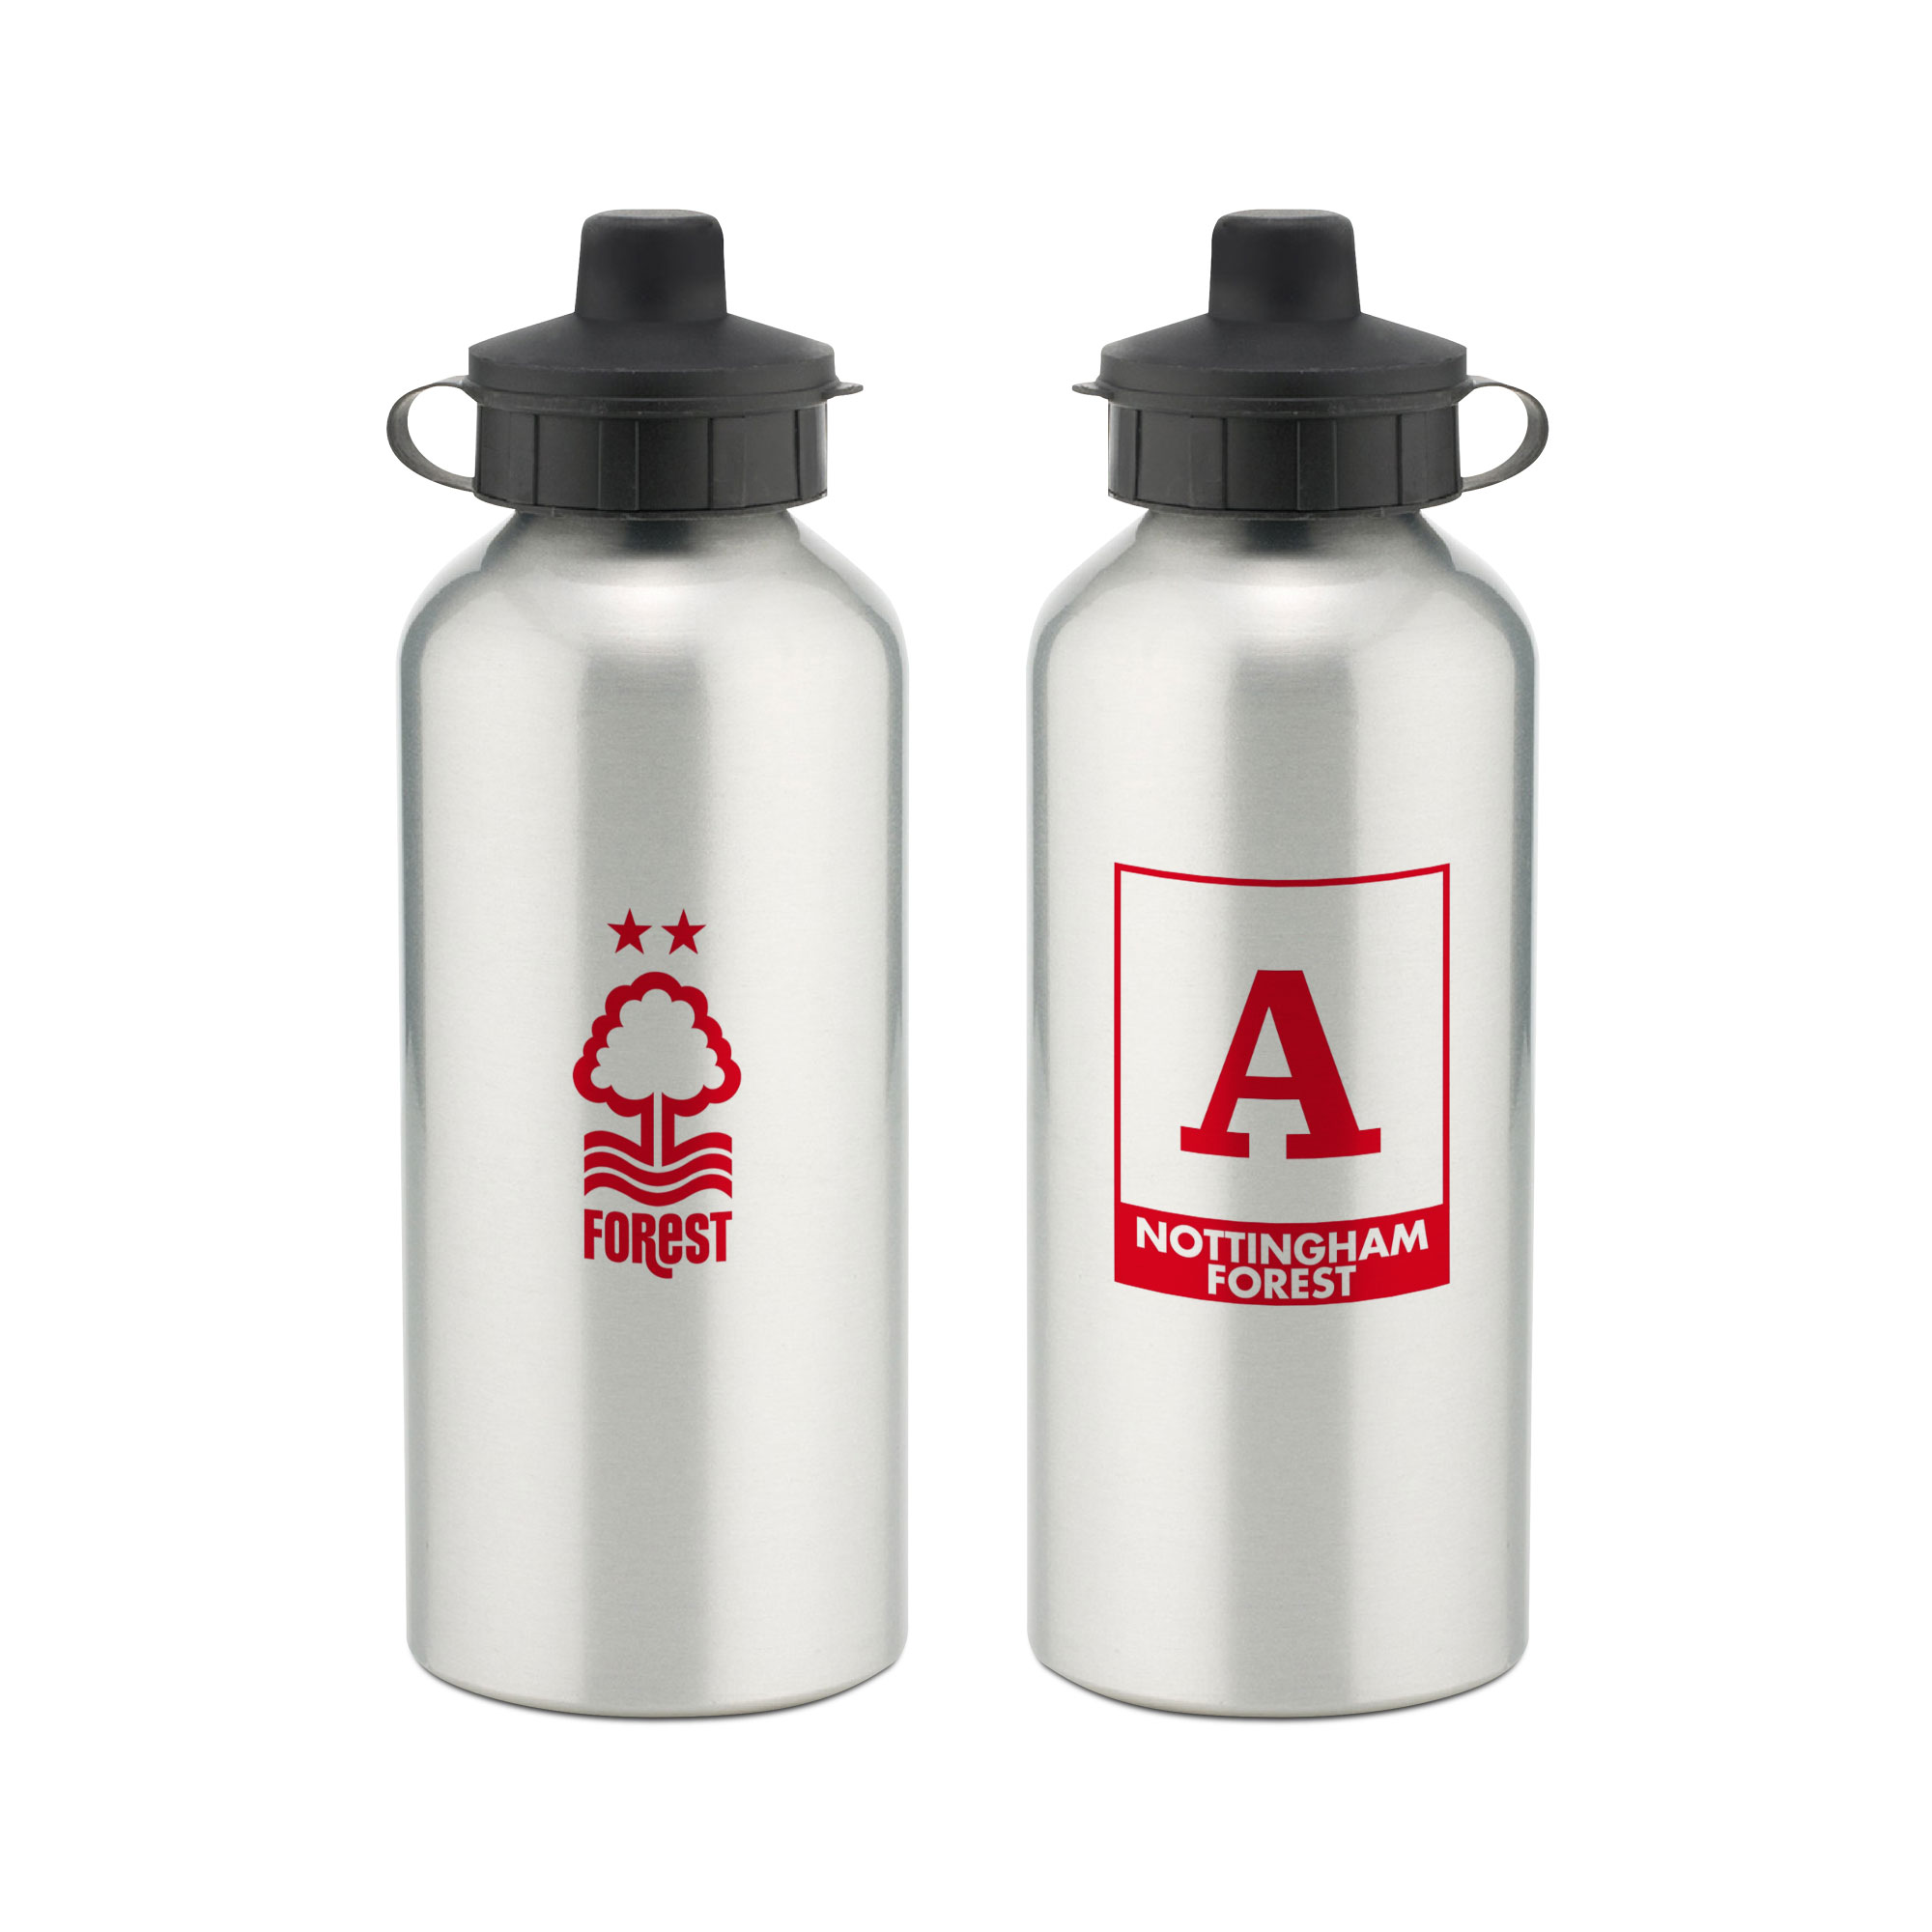 Nottingham Forest FC Monogram Aluminium Water Bottle